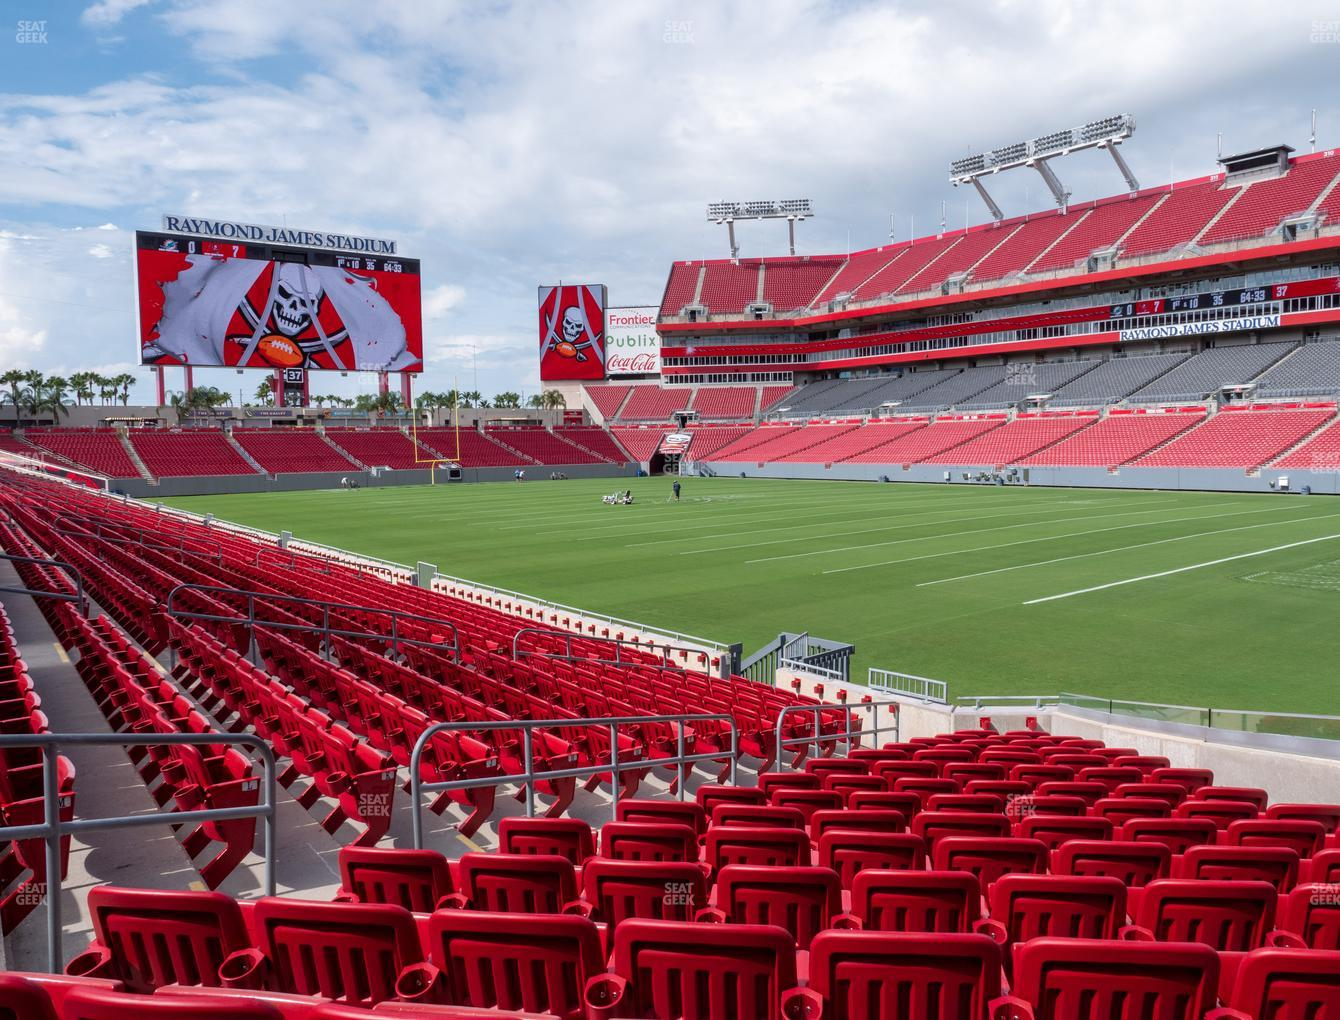 raymond james stadium section 143 seat views seatgeek raymond james stadium section 143 seat